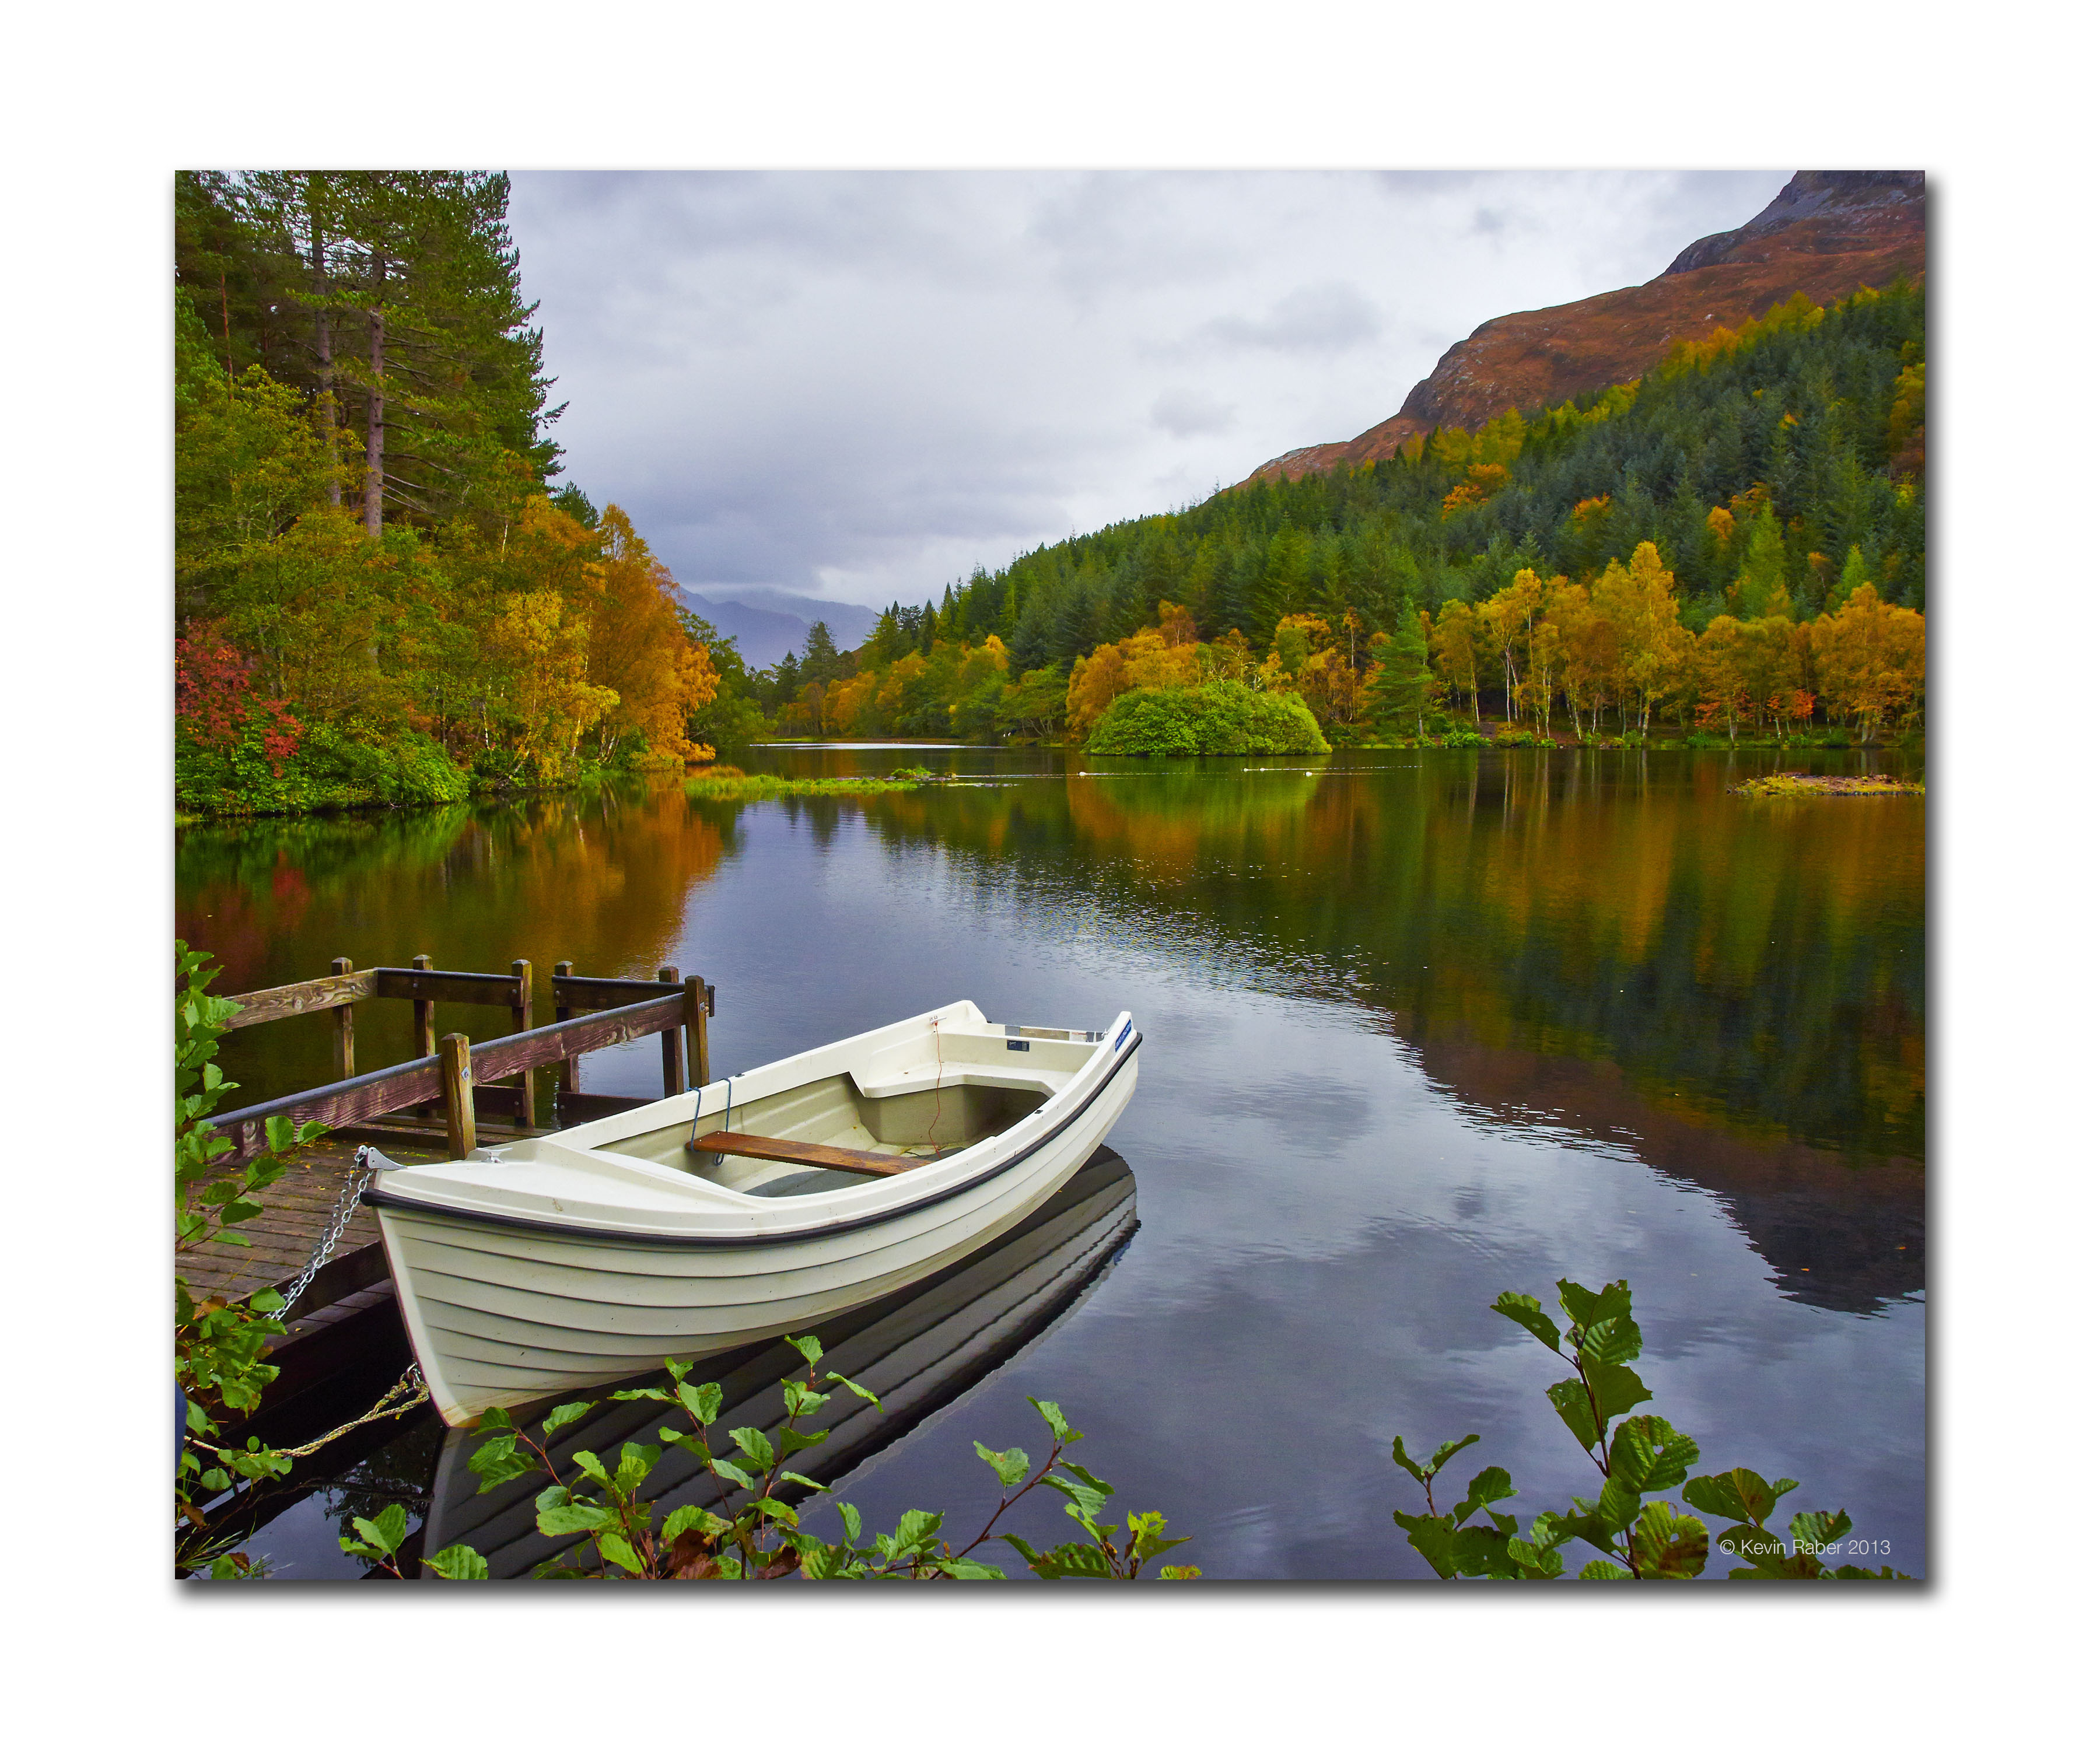 [Image: boat-on-lake-scotland-34.jpg]